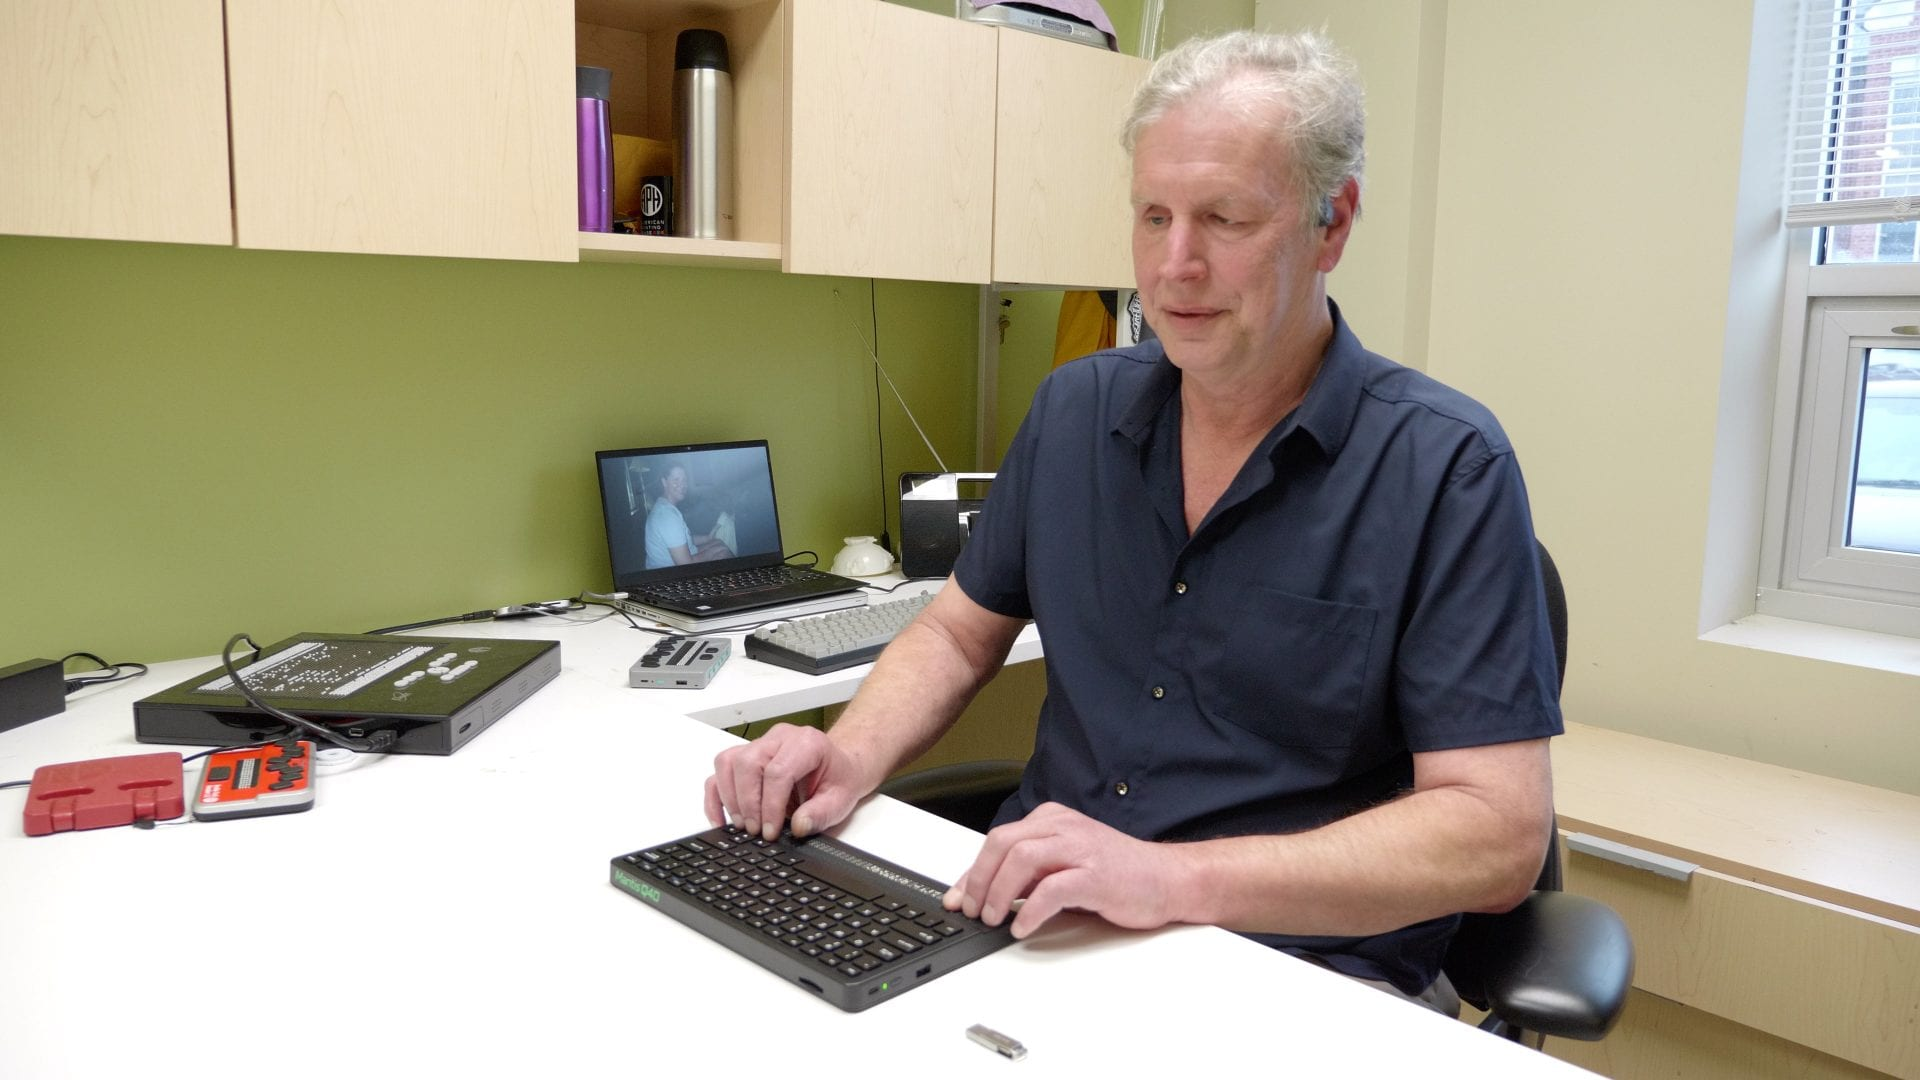 Larry Skutchan sitting in his office using the Mantis Q40 at his desk